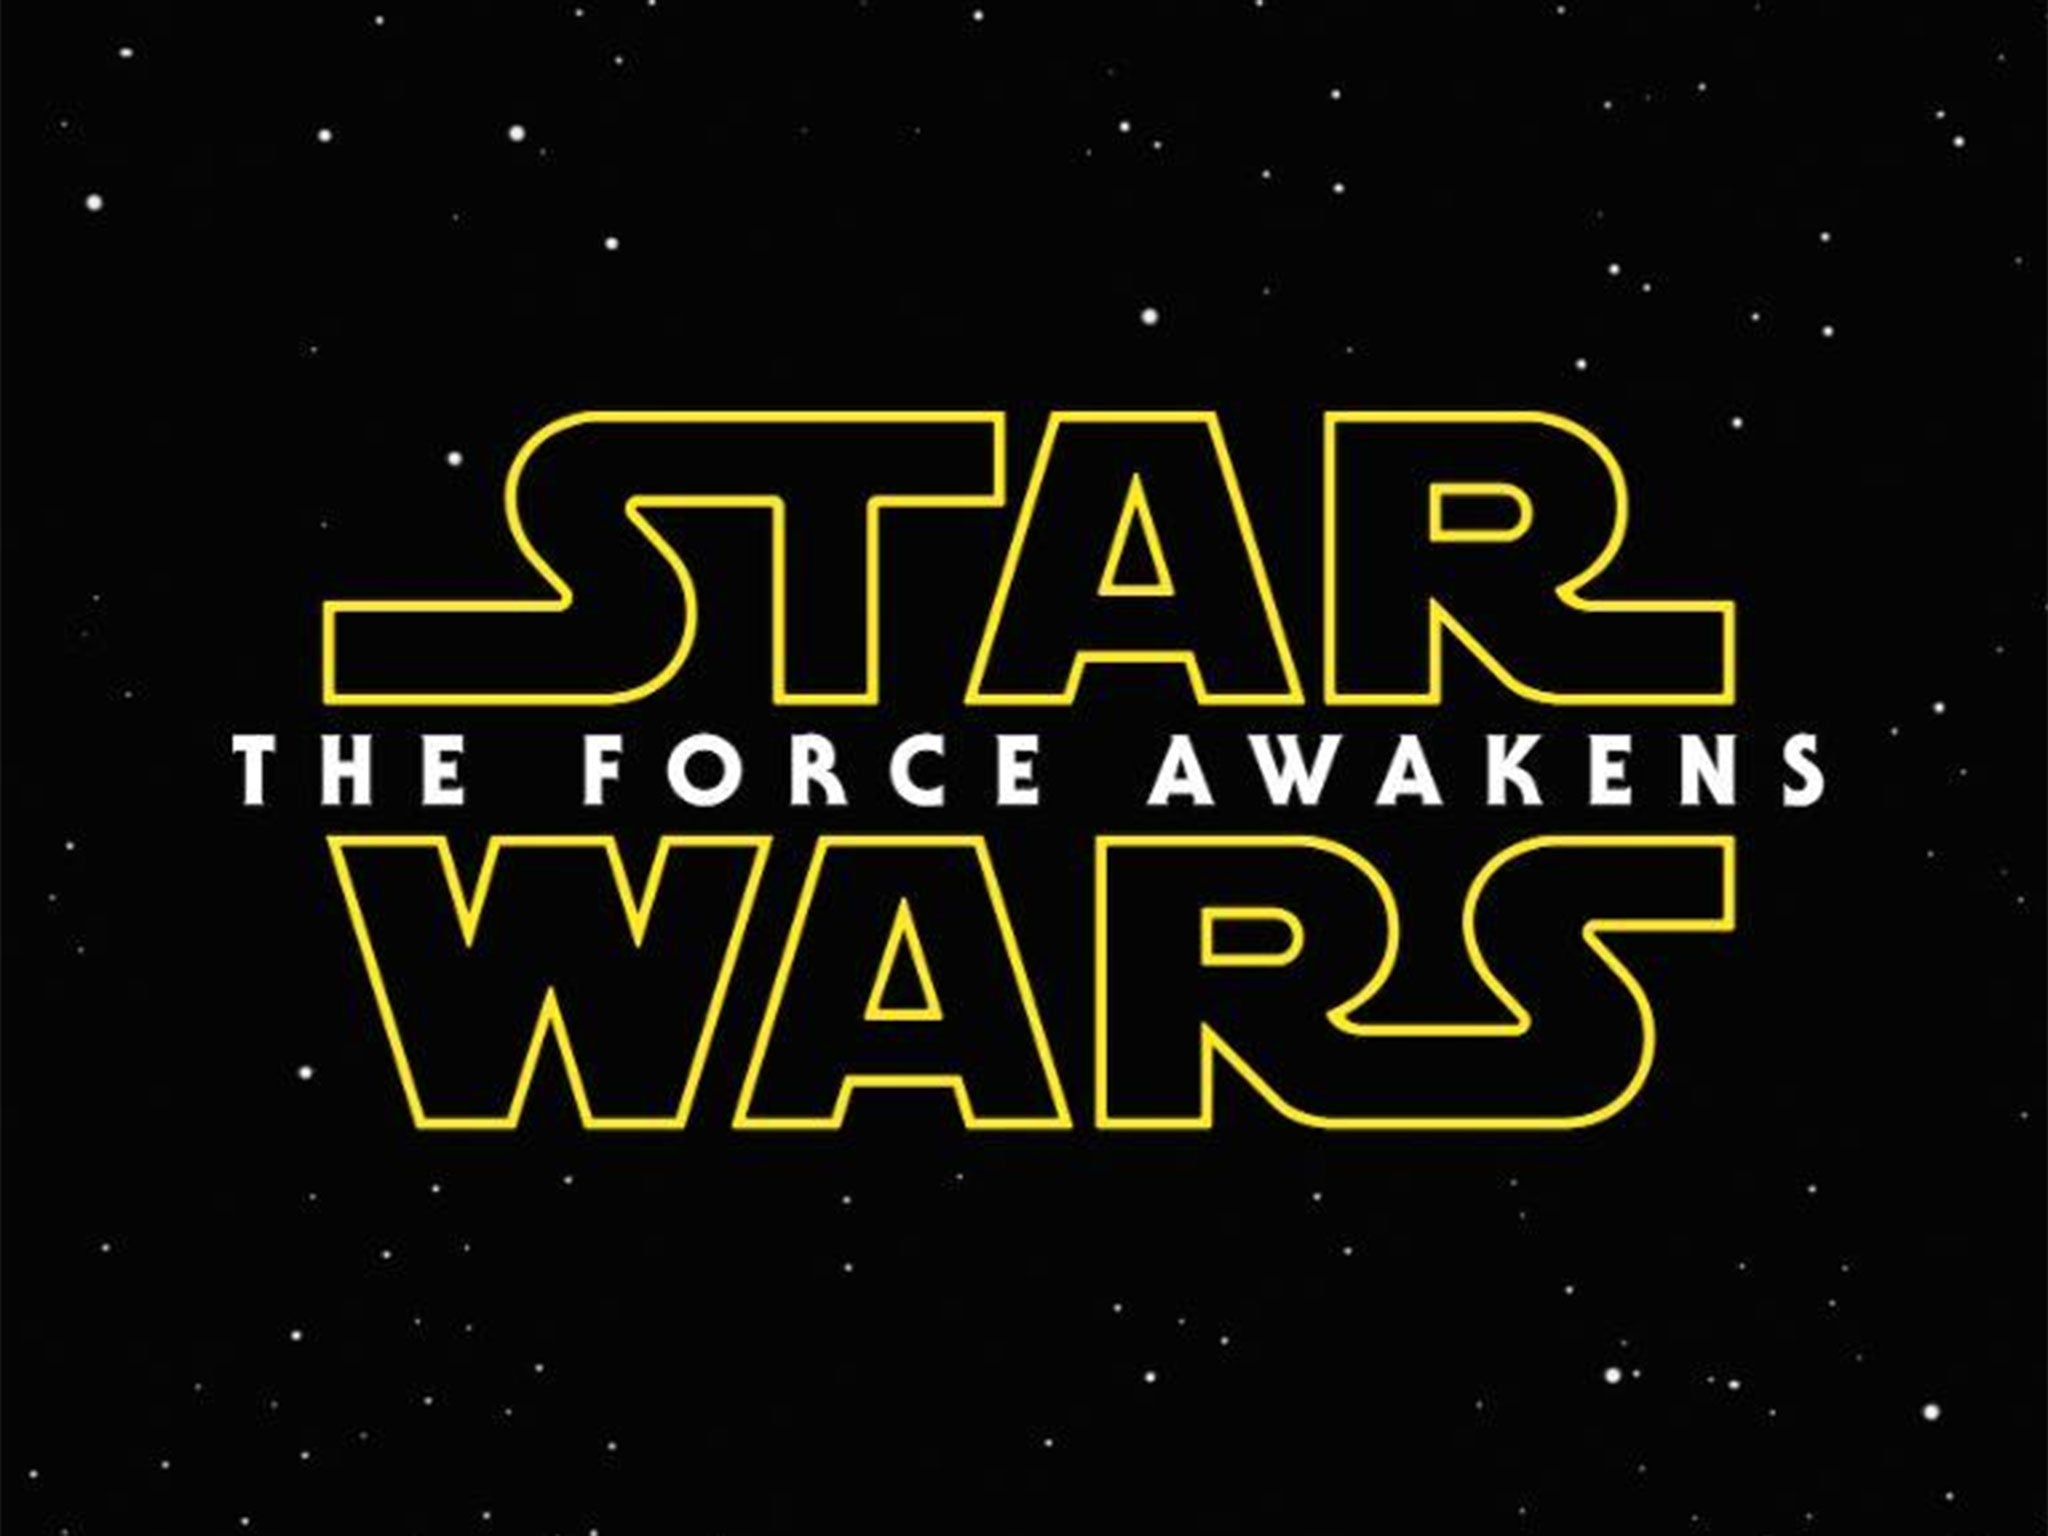 star wars 7 movie title confirmed as star wars the force